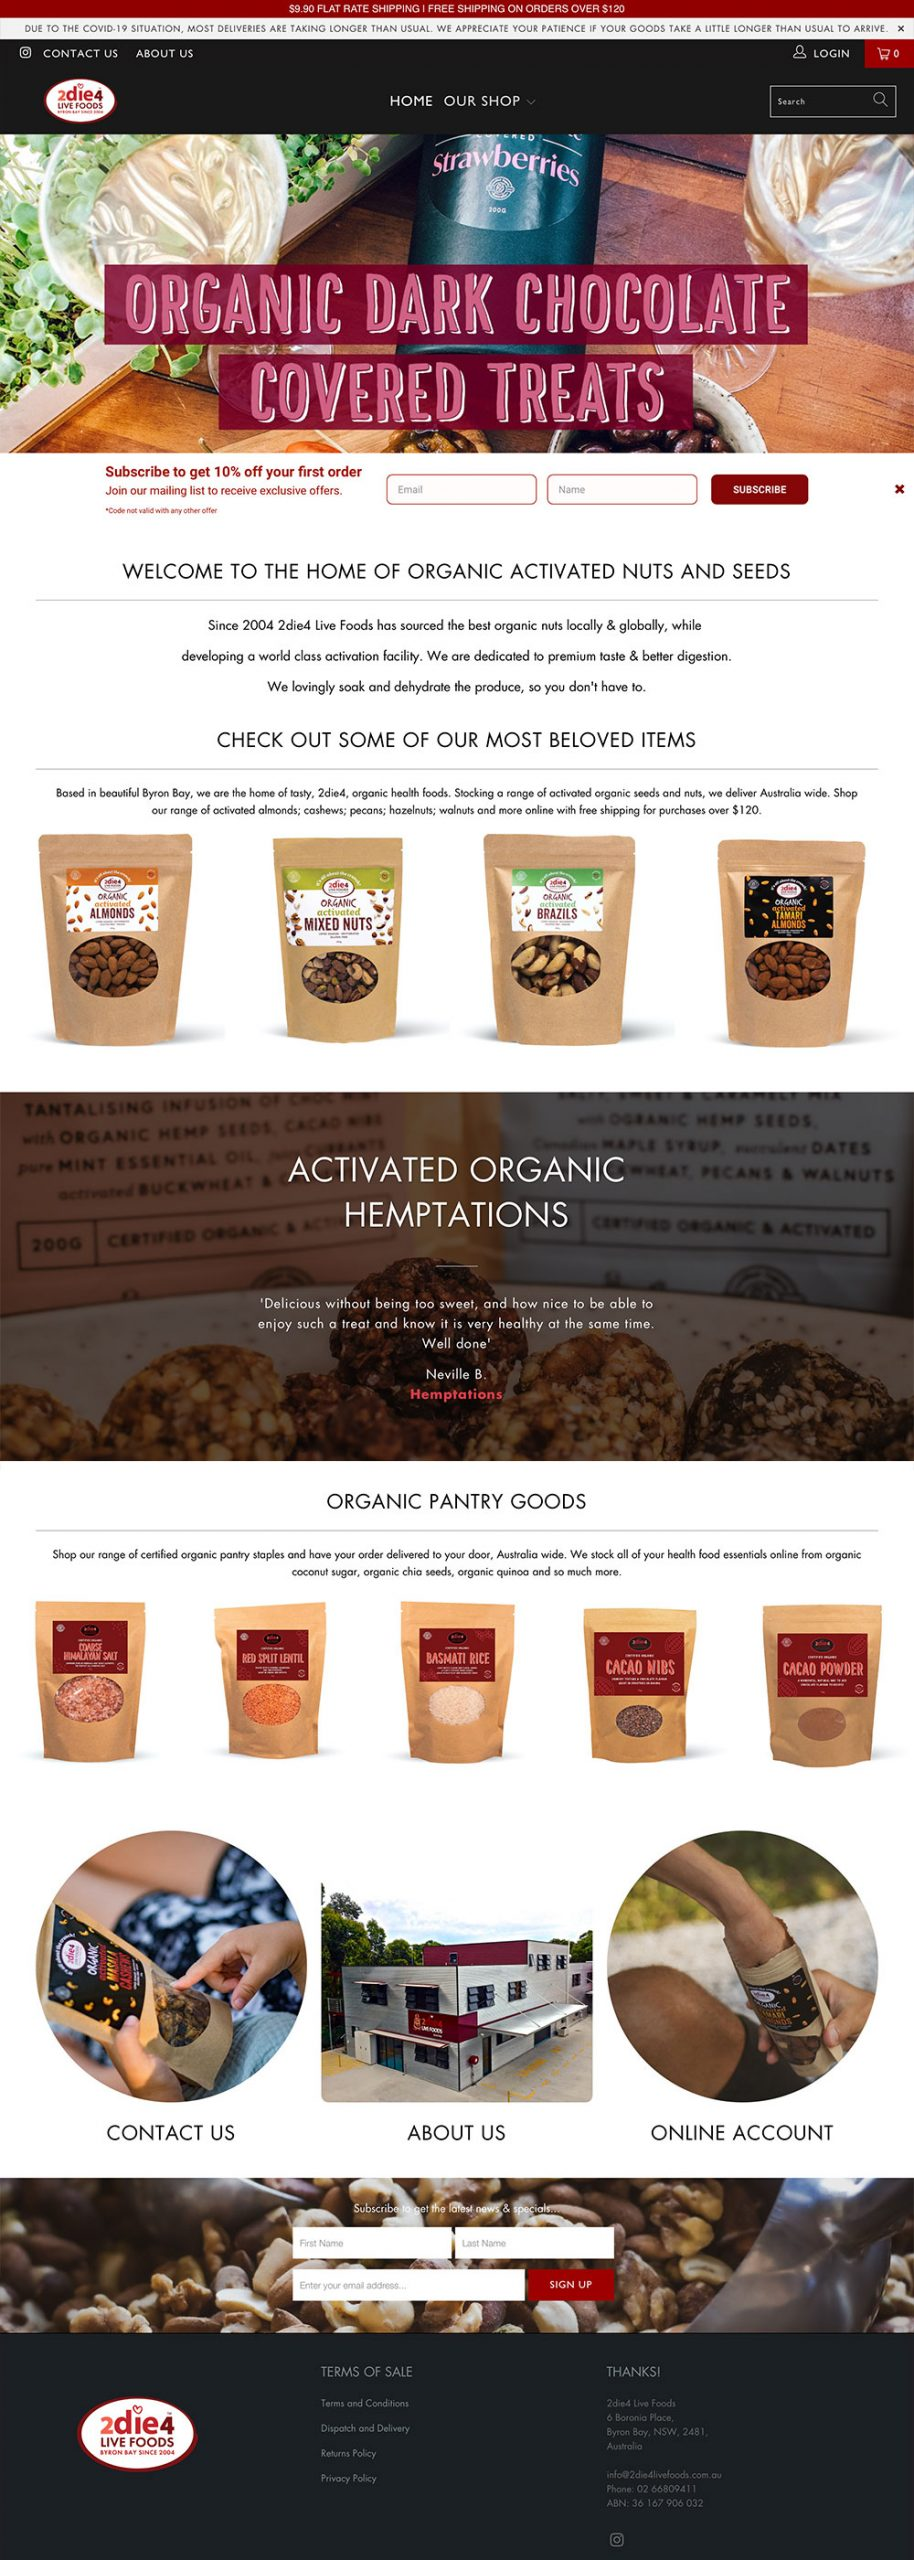 2die4 Live Foods Byron Bay | Before Website Refresh | Shopify Redesign by Little Palm Creative